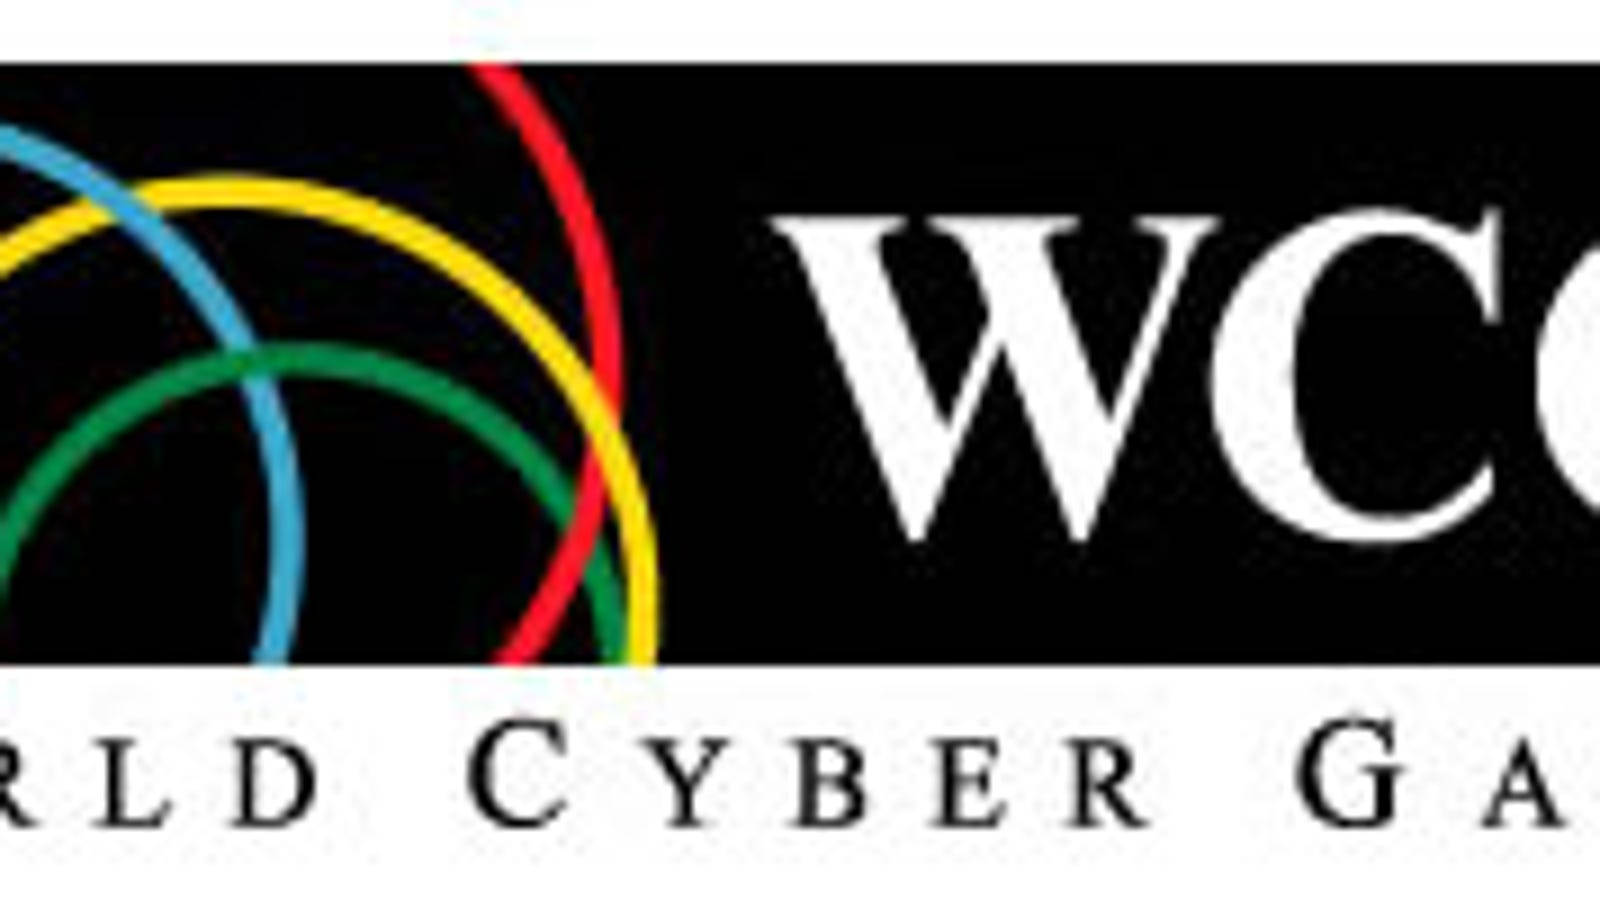 America's Best To Compete At The World Cyber Games Final In LA